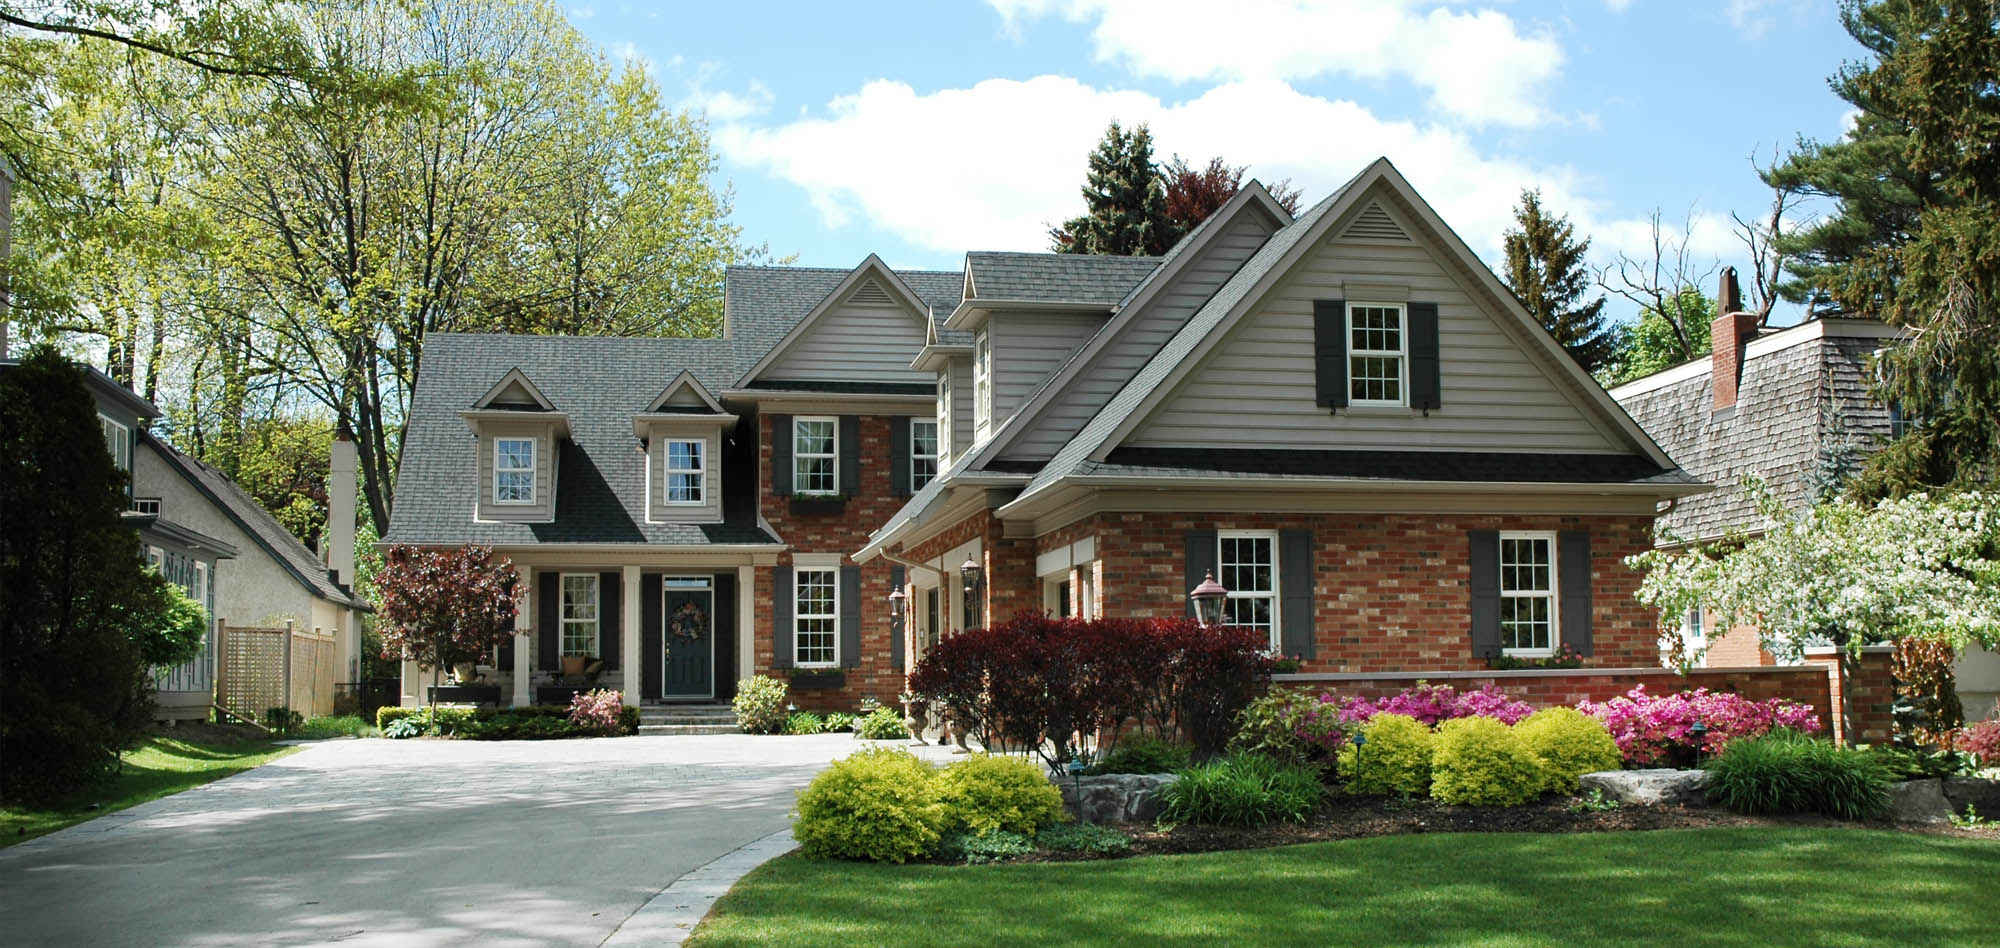 green house color ideas - green siding with brick dark green shutters